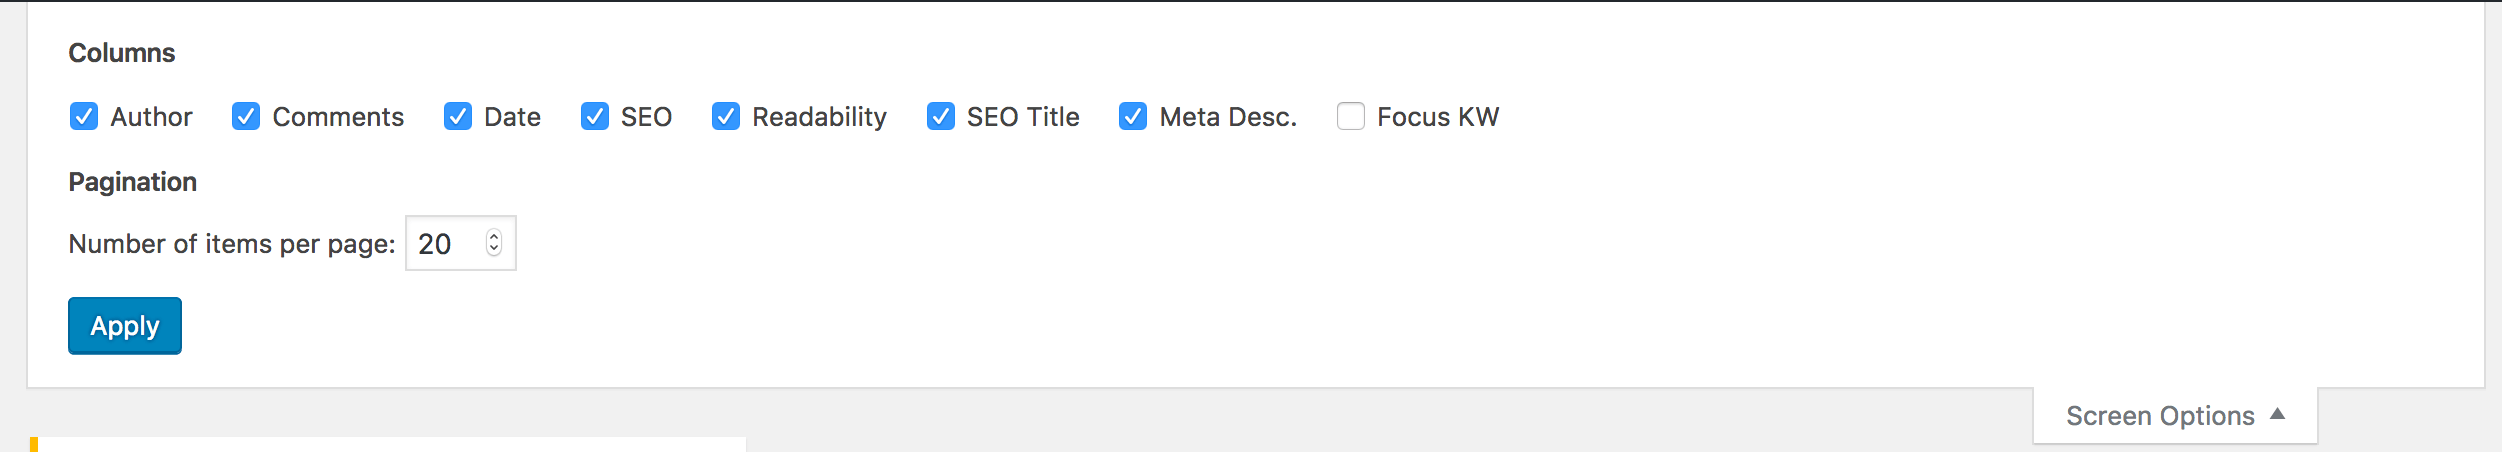 Missing Options